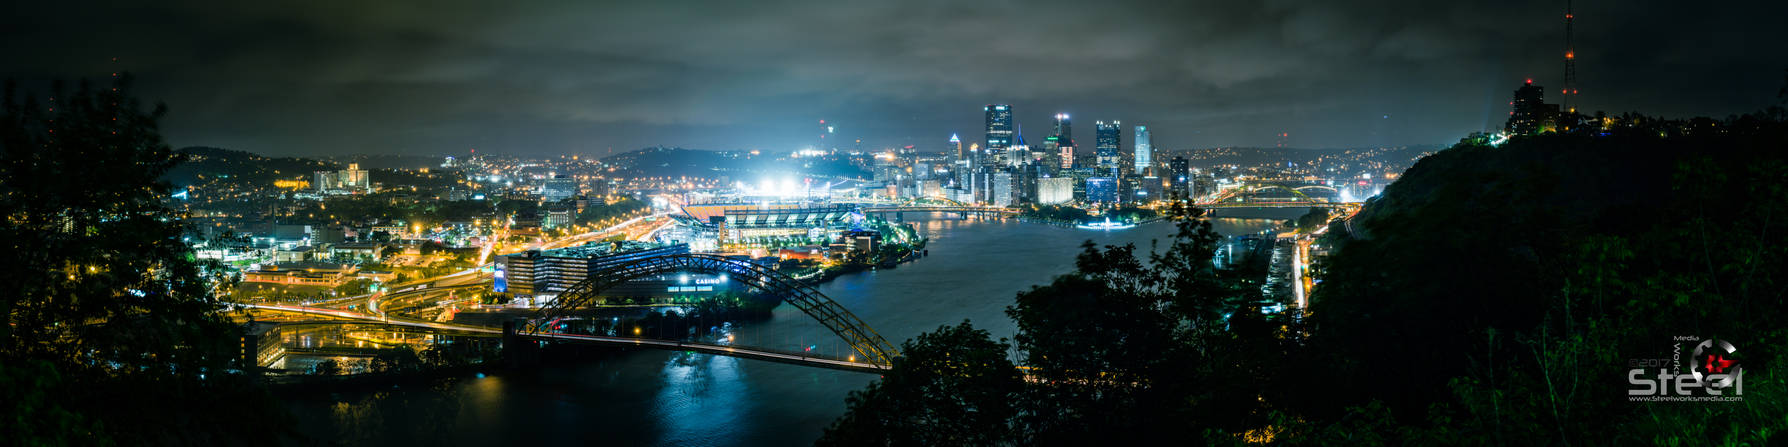 Pittsburgh, PA (View: West End-Elliott Overlook)